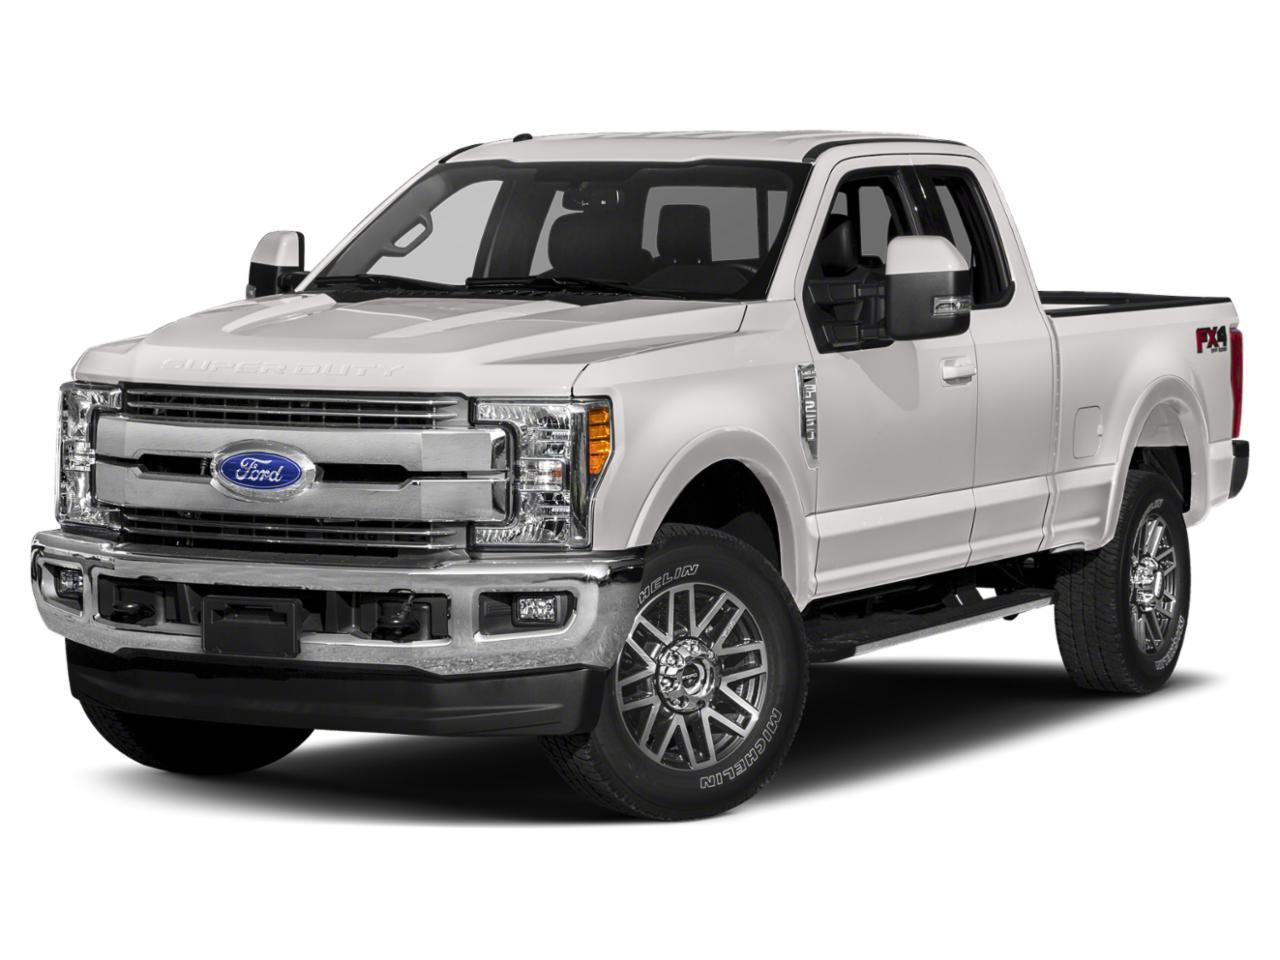 2019 Ford F-250SD KING RANCH Crew Cab Pickup Slide